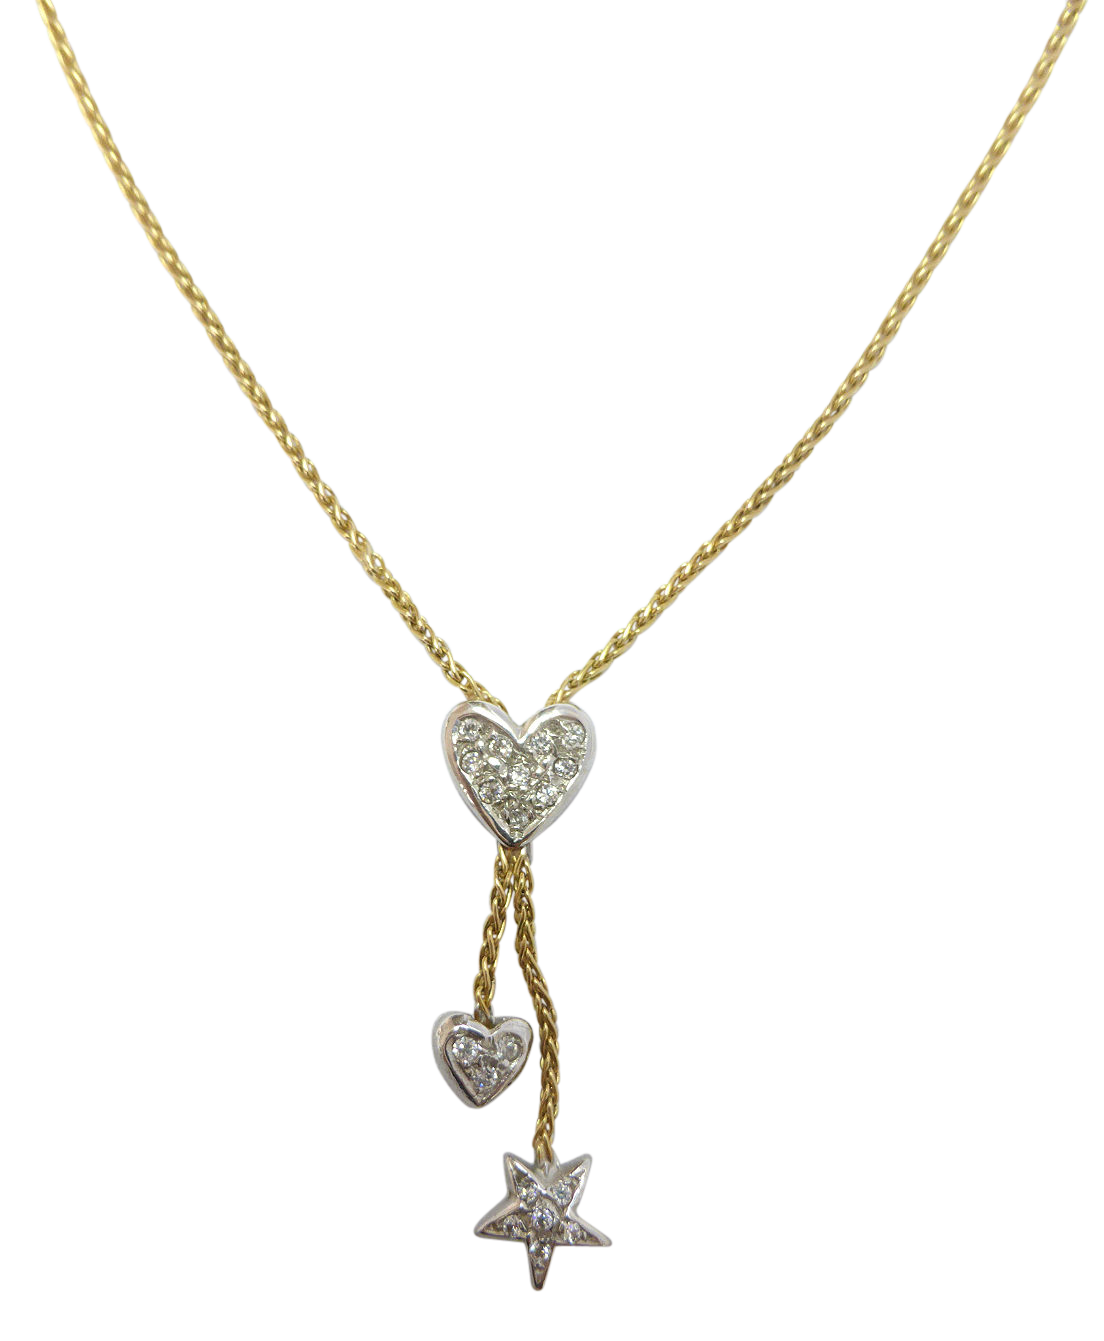 jewelers tone diamond item necklace three kloiber small gold with pendant two jewelry